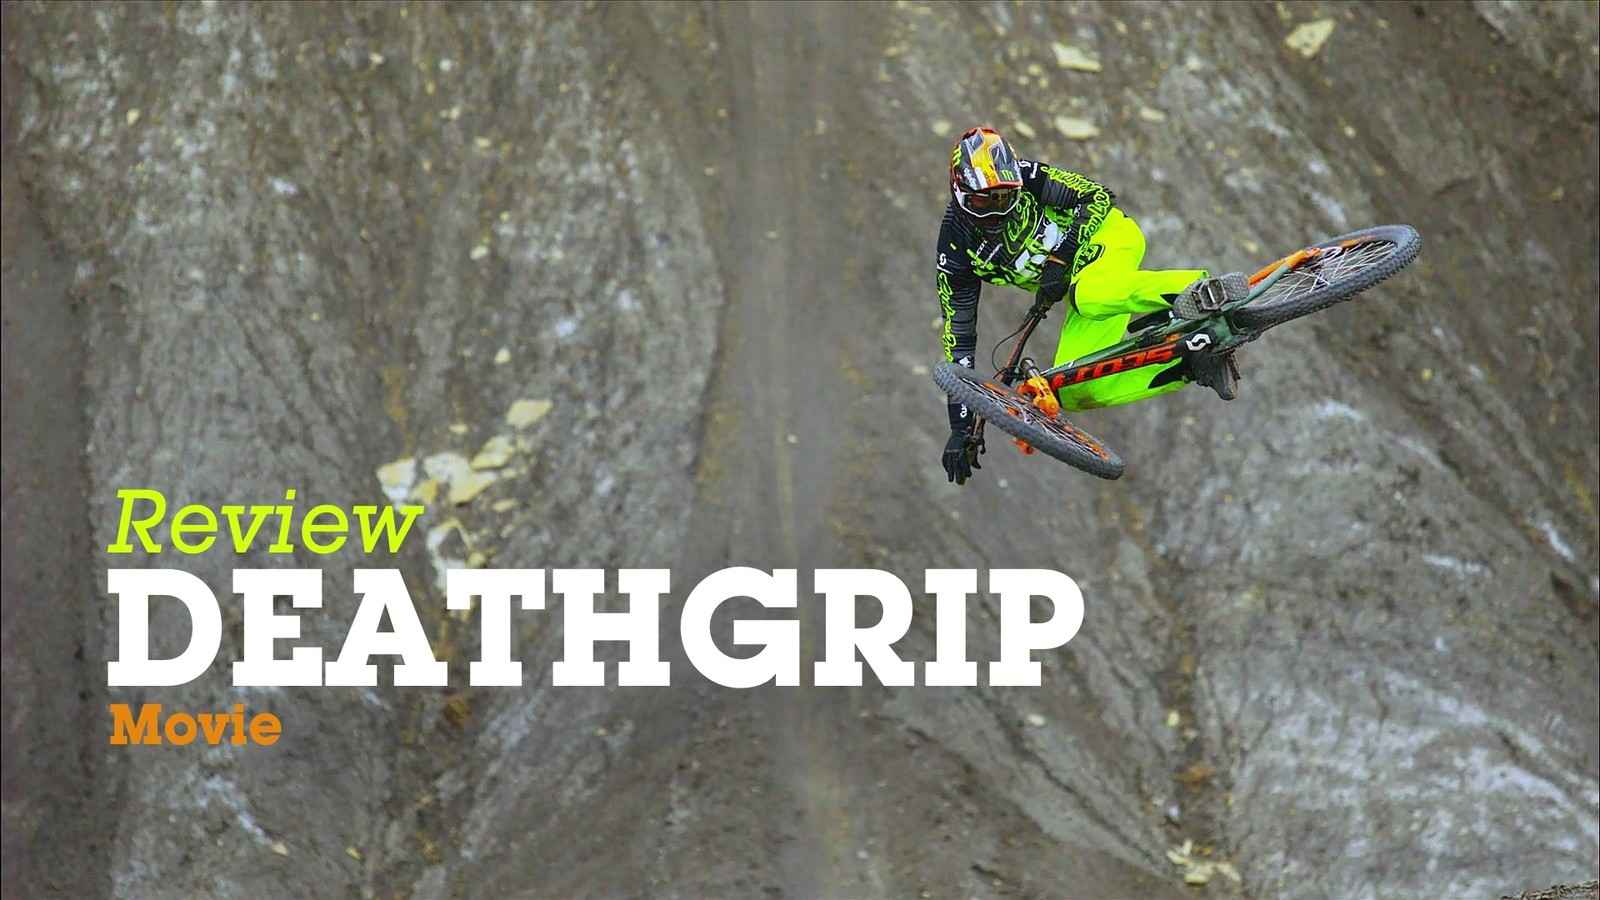 Deathgrip Movie - A Review